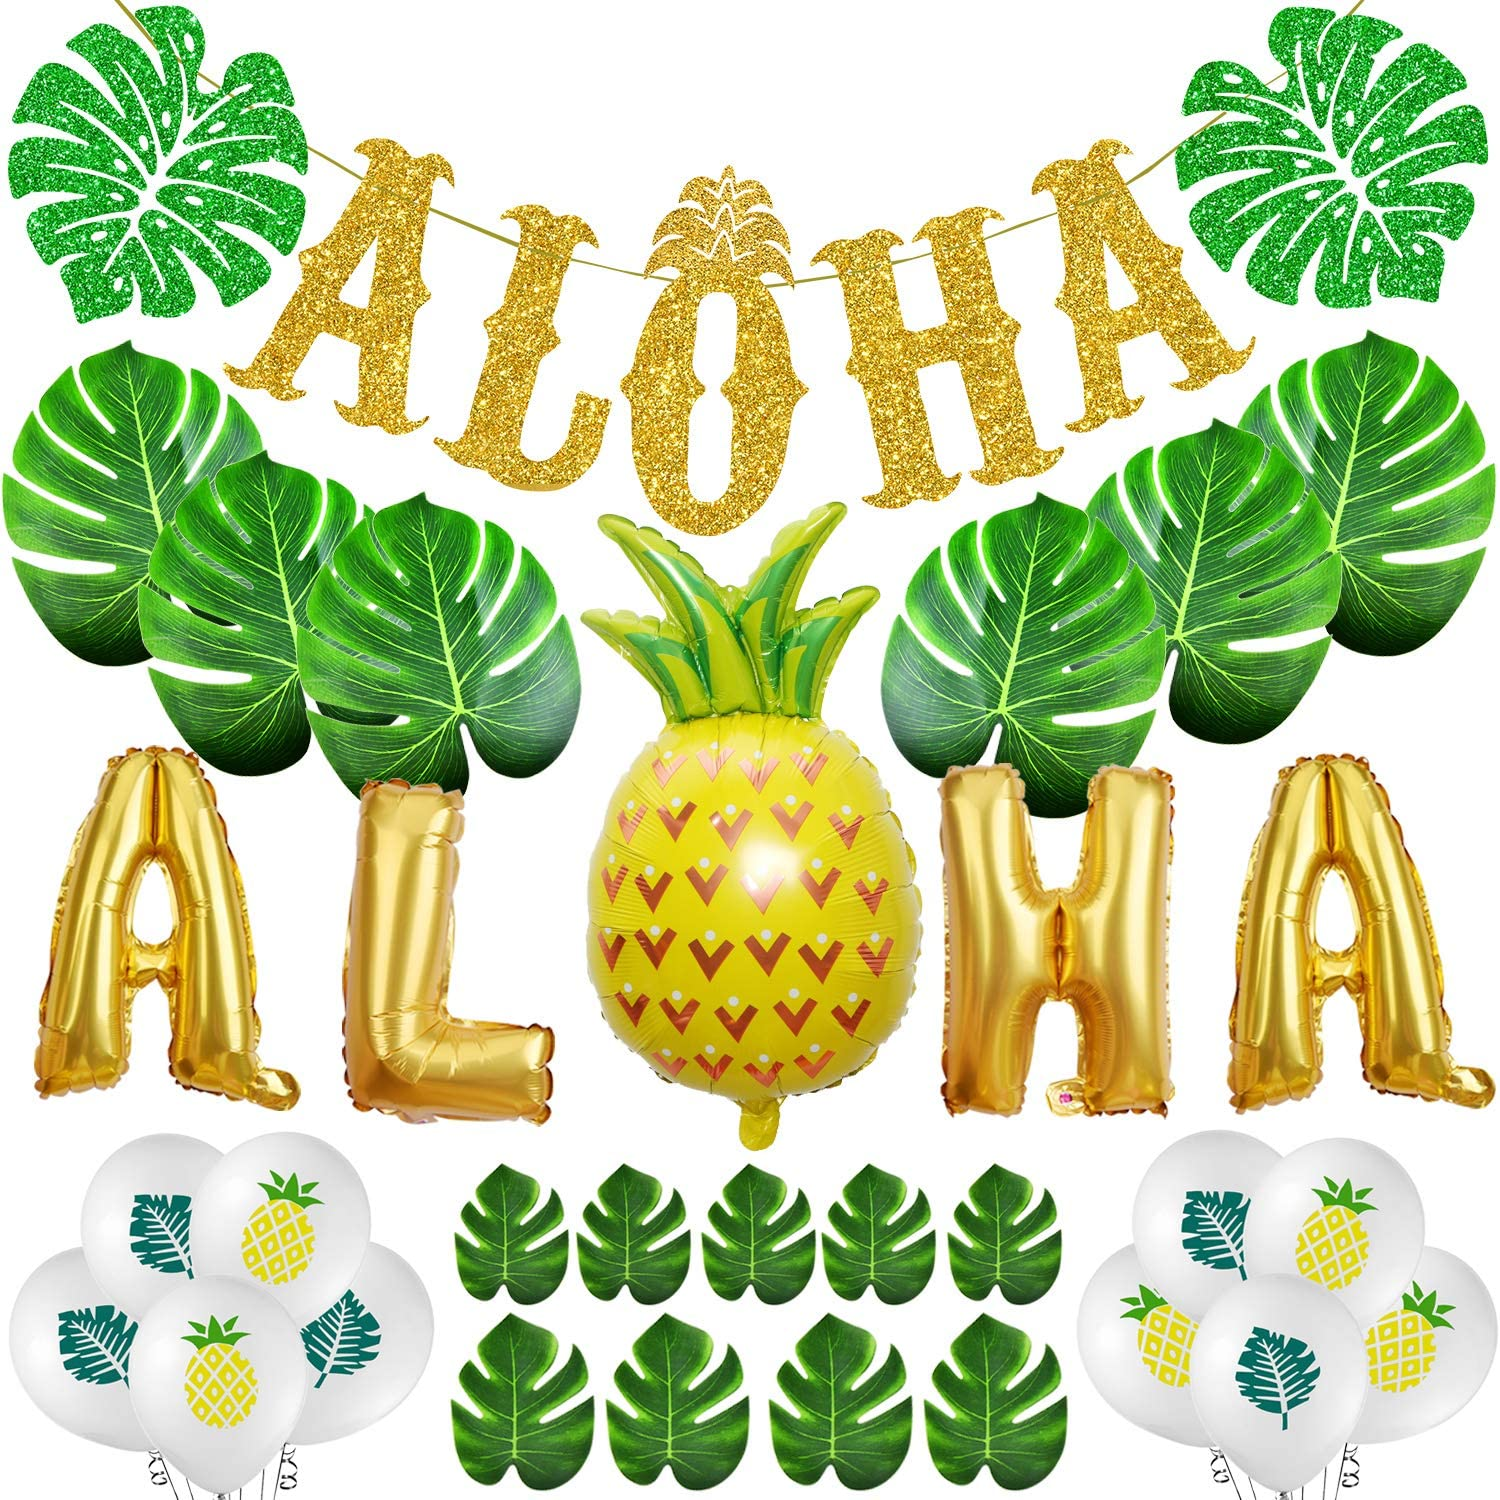 TMCCE Aloha Party Decoration Aloha banner Sign Luau Hawaiian Party Decoration Set Large Gold ALOHA Banner,30 Size Of Leaves of Tropical Plants,Aloha Party Balloons,Pineapple and Leaves Latex Balloons